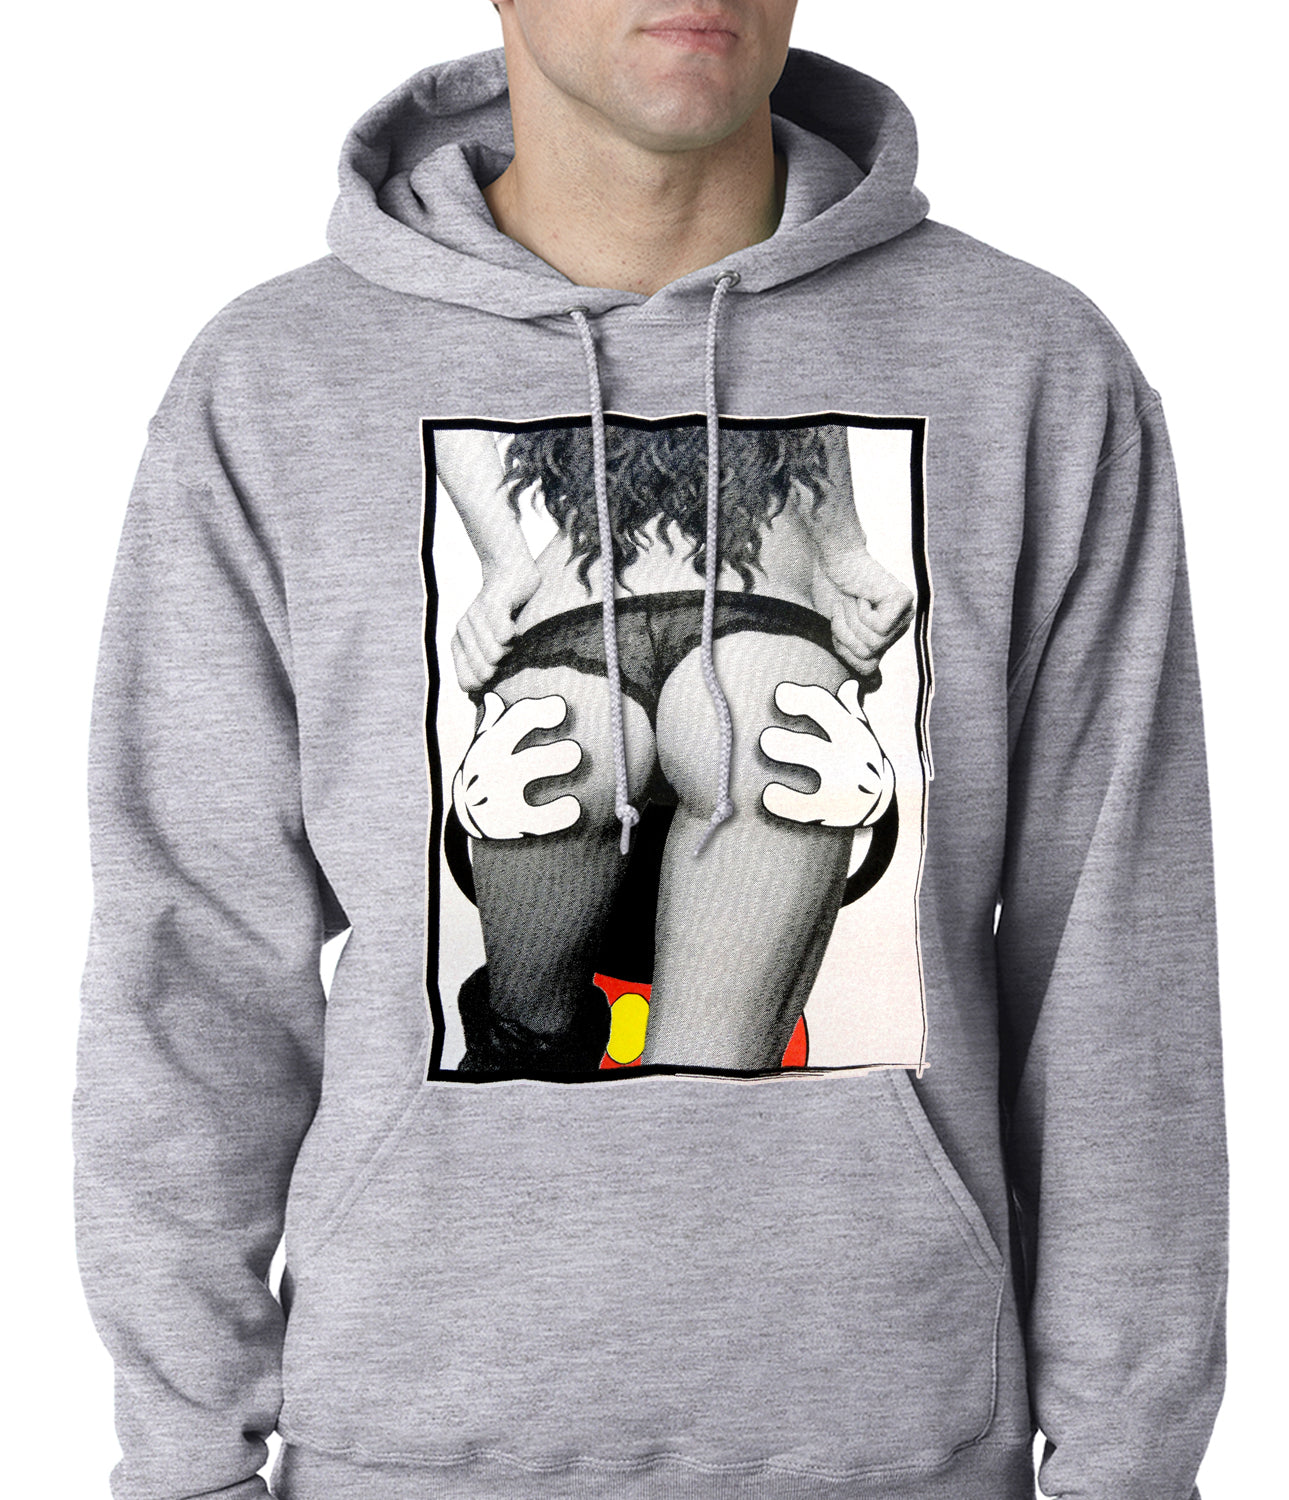 Cartoon Hands Getting a Feel Butt Hoodie